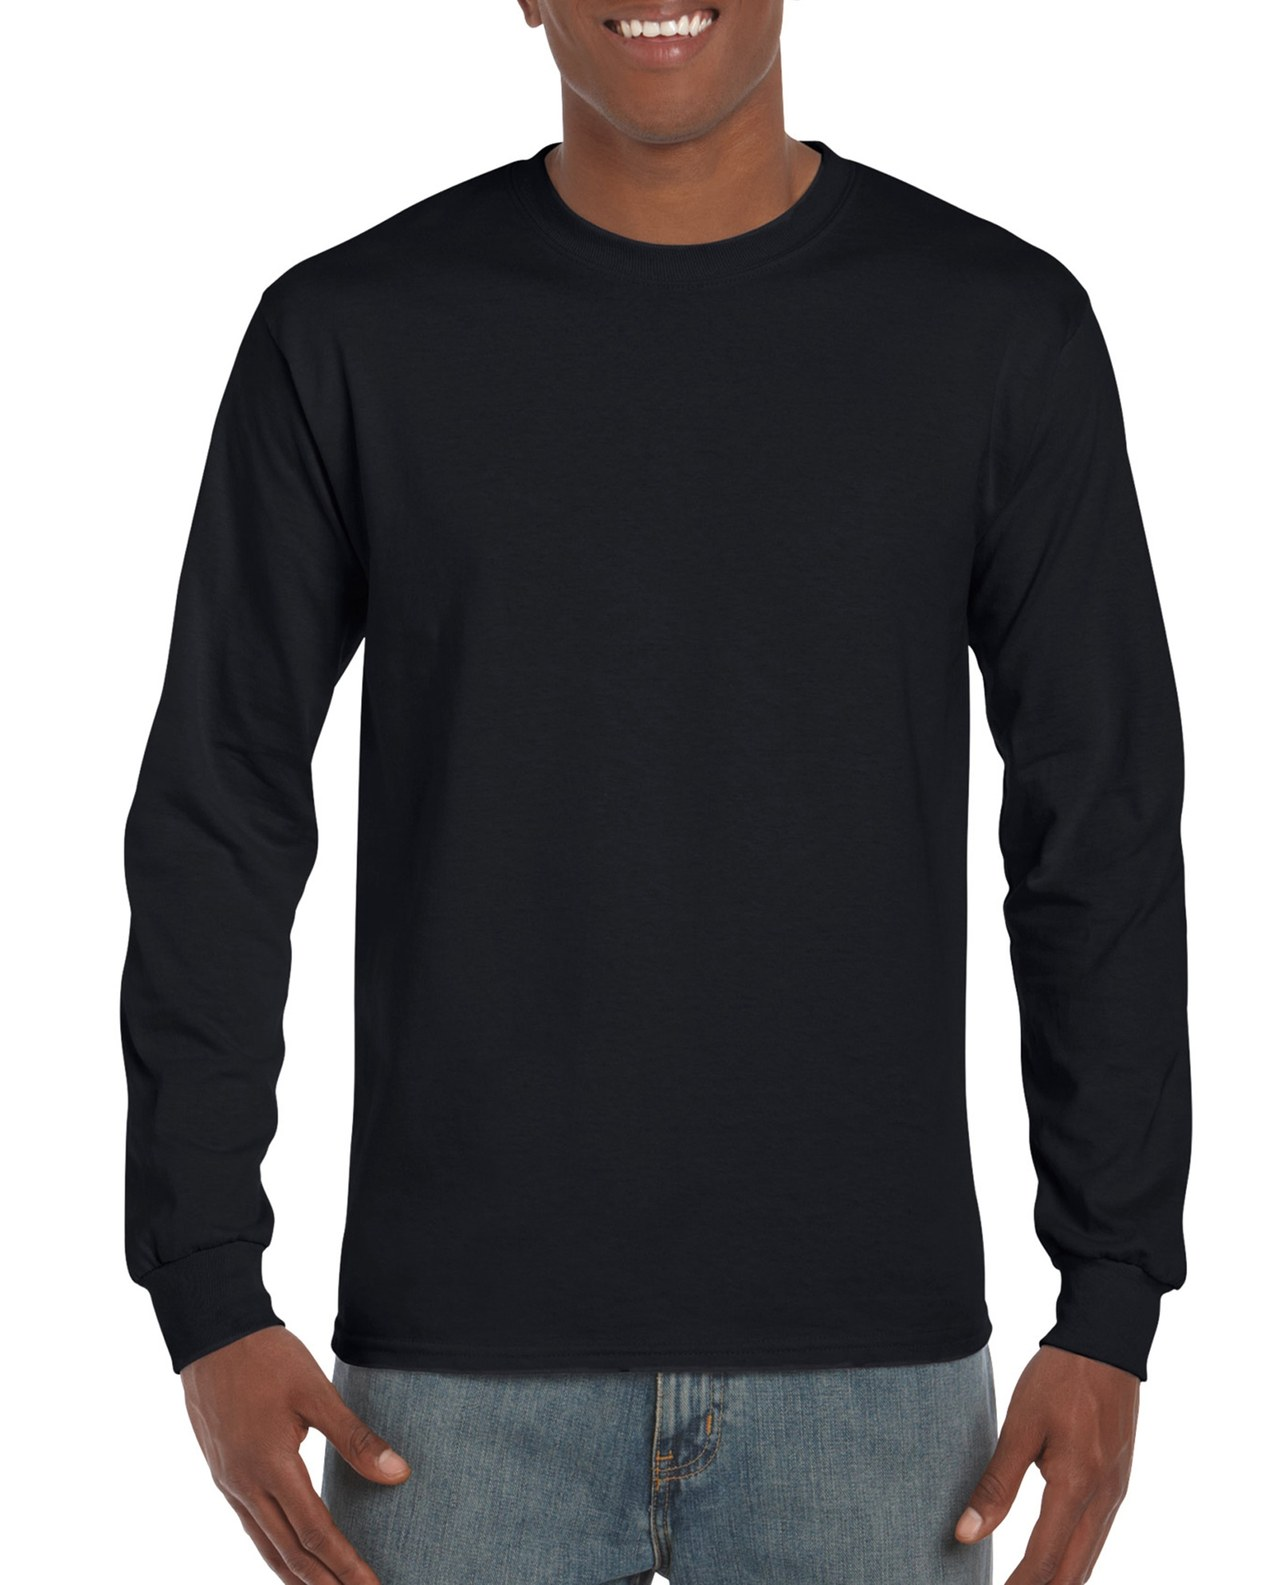 2400 | Gildan® Ultra Cotton® | 6.0 oz/yd² | Adult Long Sleeve T ...